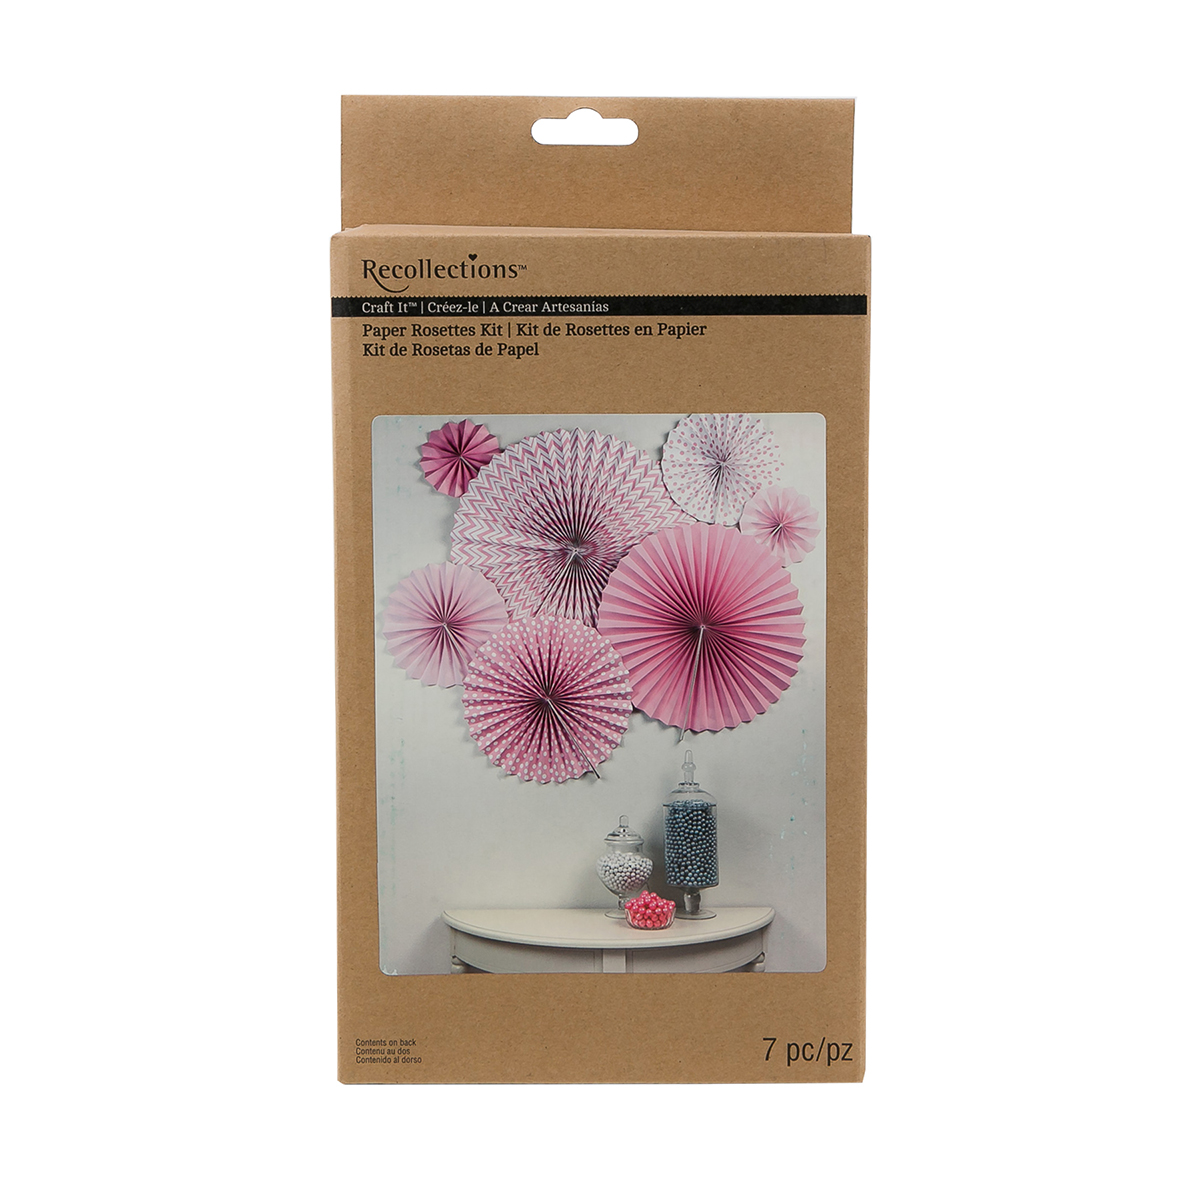 recollections paper flower kit koni polycode co